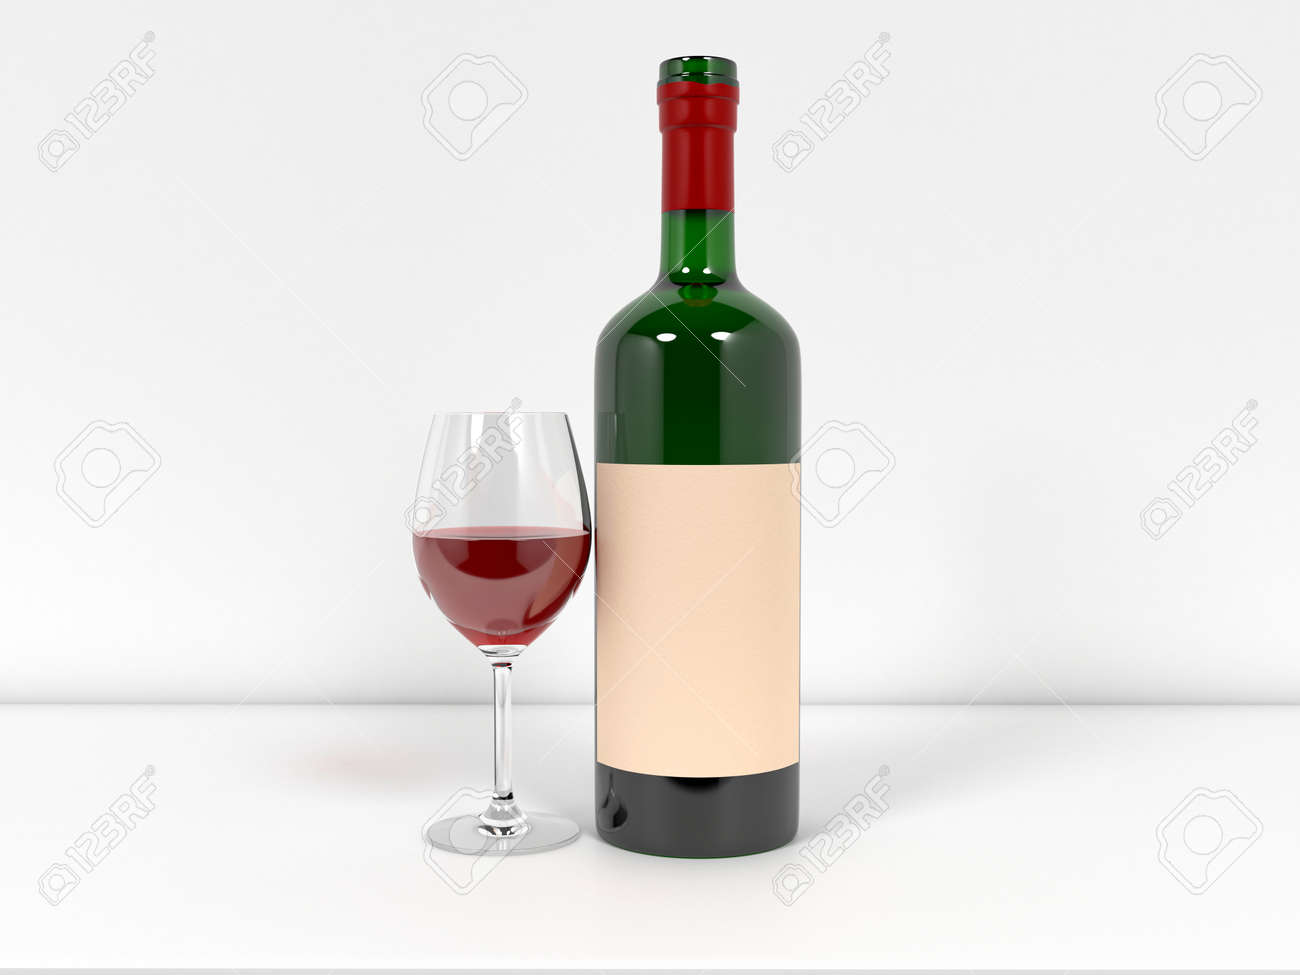 Bottle of wine with glass on white background. 3d rendering illustration. - 150186610